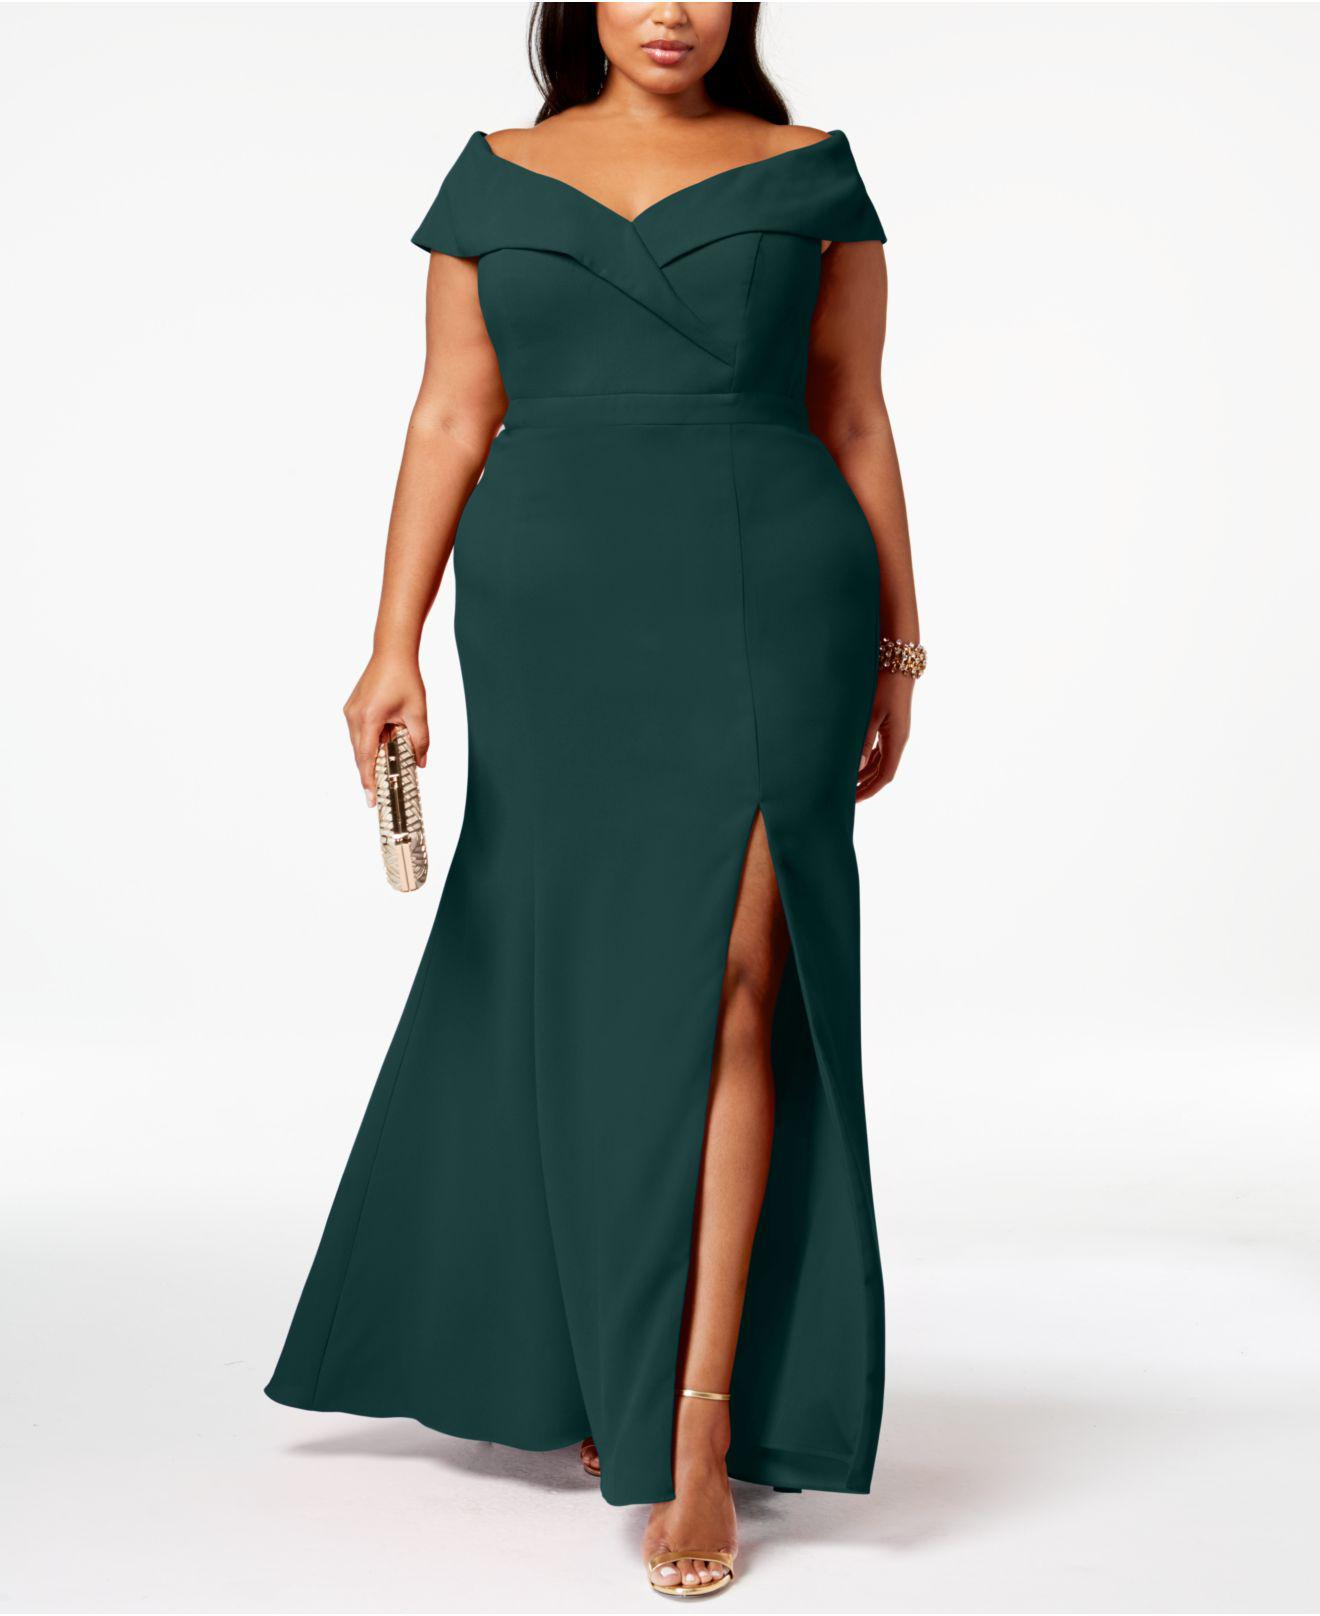 462c727ce71 Lyst - Xscape Plus Size Off-the-shoulder Slit Gown in Green